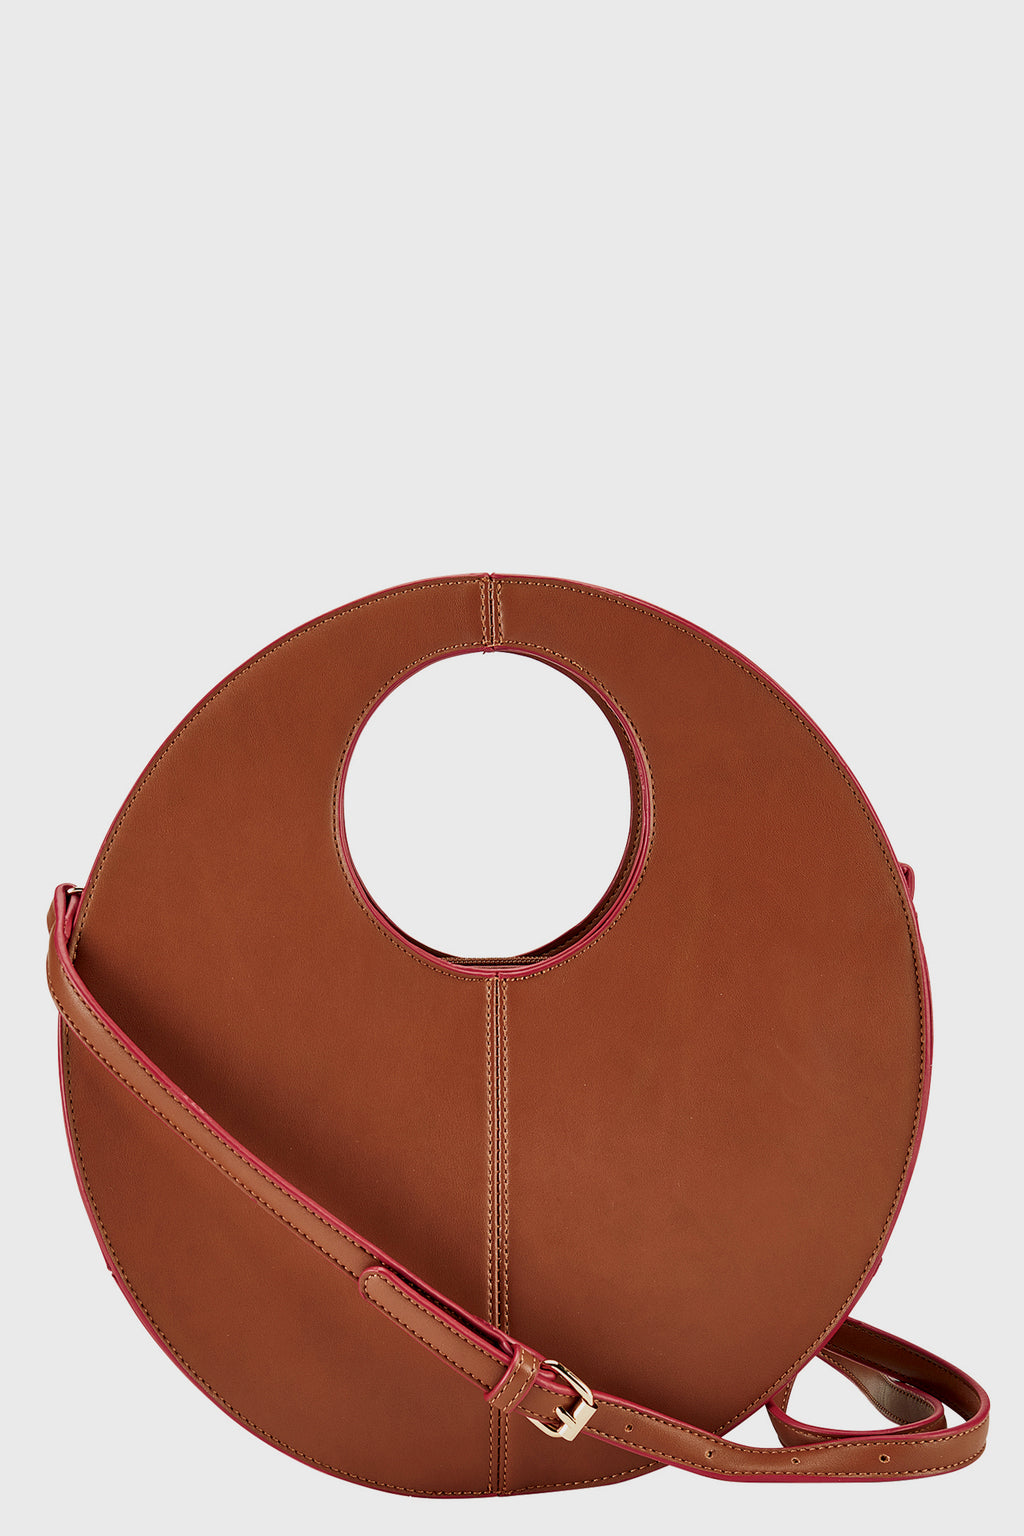 Structured Faux Leather Oval Bag (BSB3669)-CROSSBODY-BaySky